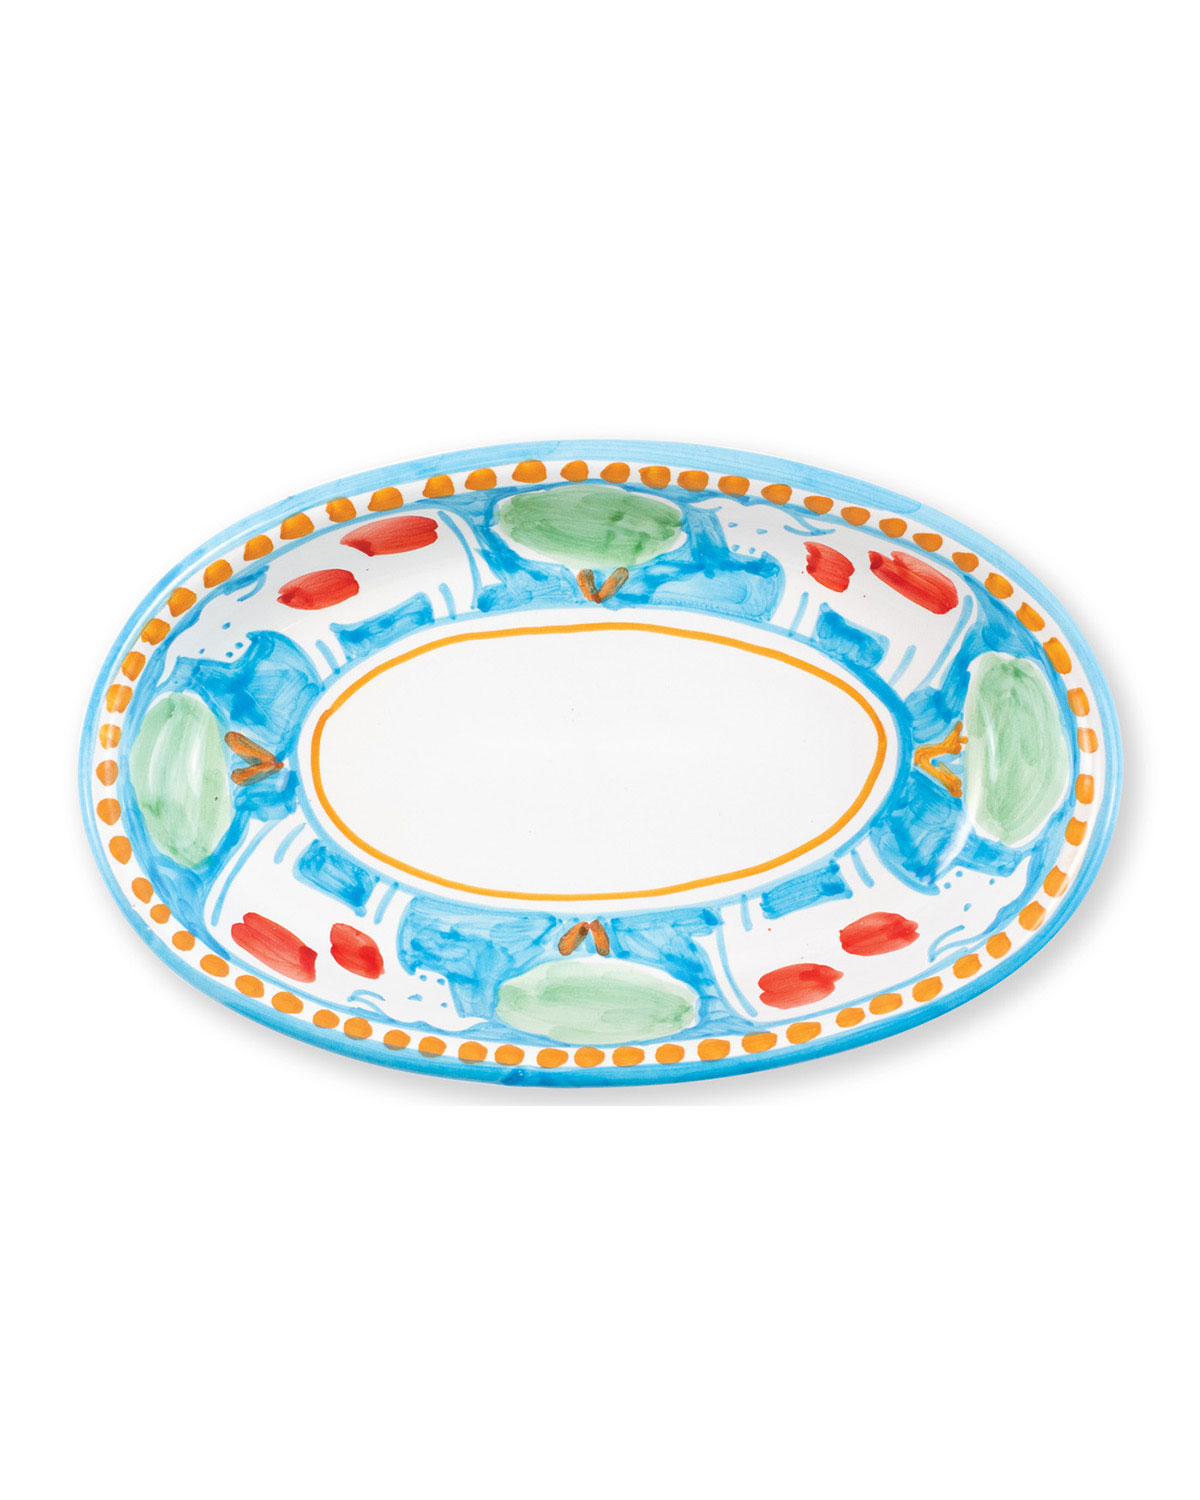 Vietri Mucca Small Oval Tray